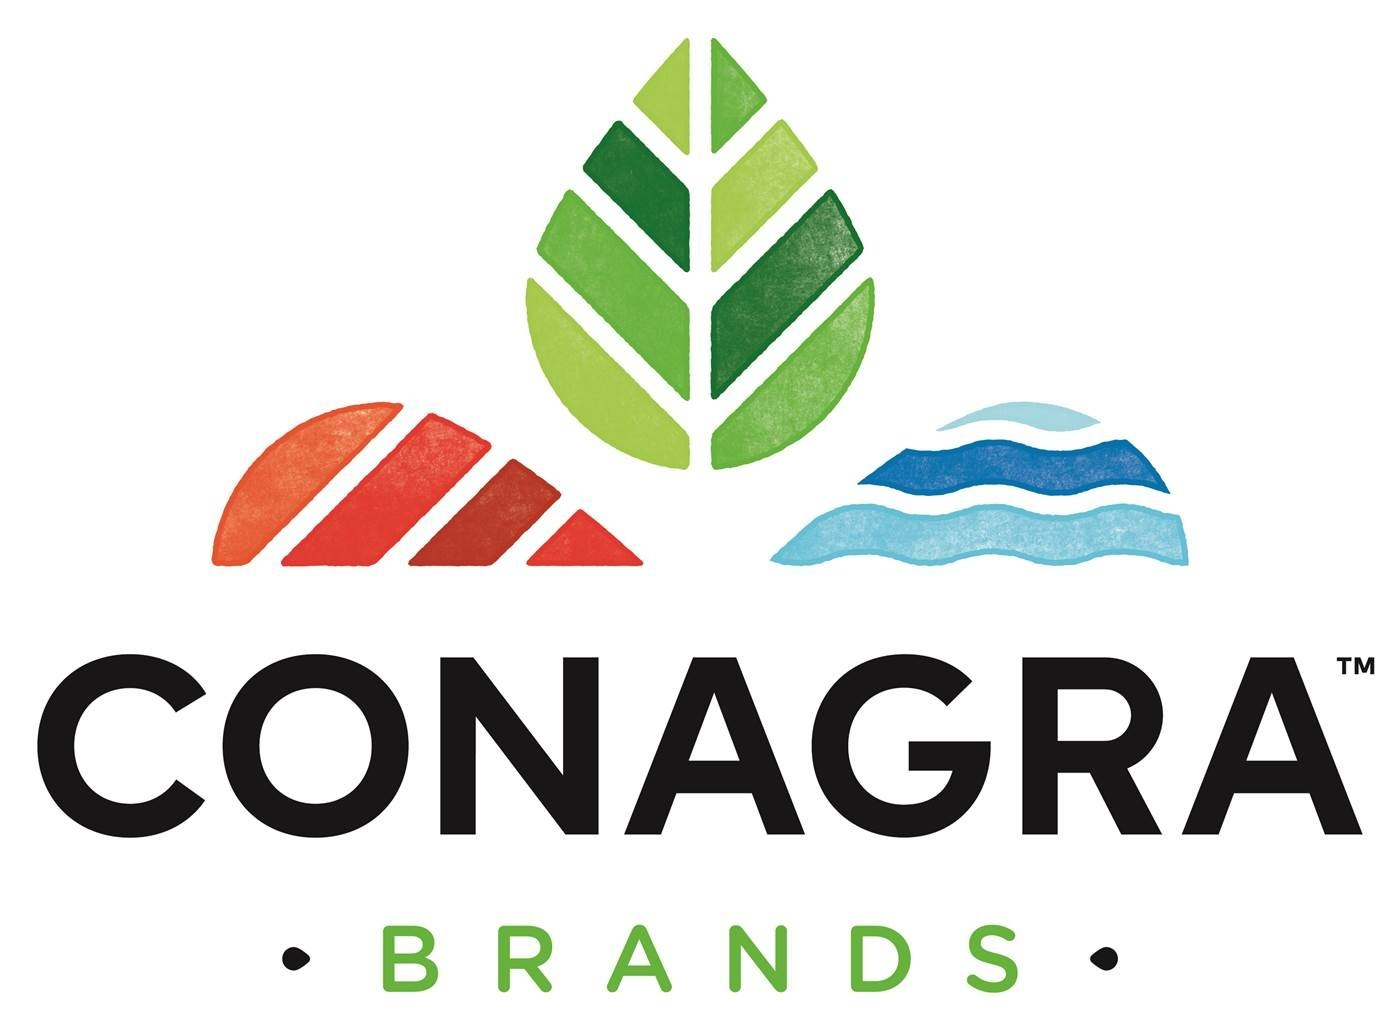 Conagra Brands Partners with MSC to Boost Sustainable Seafood in U.S.